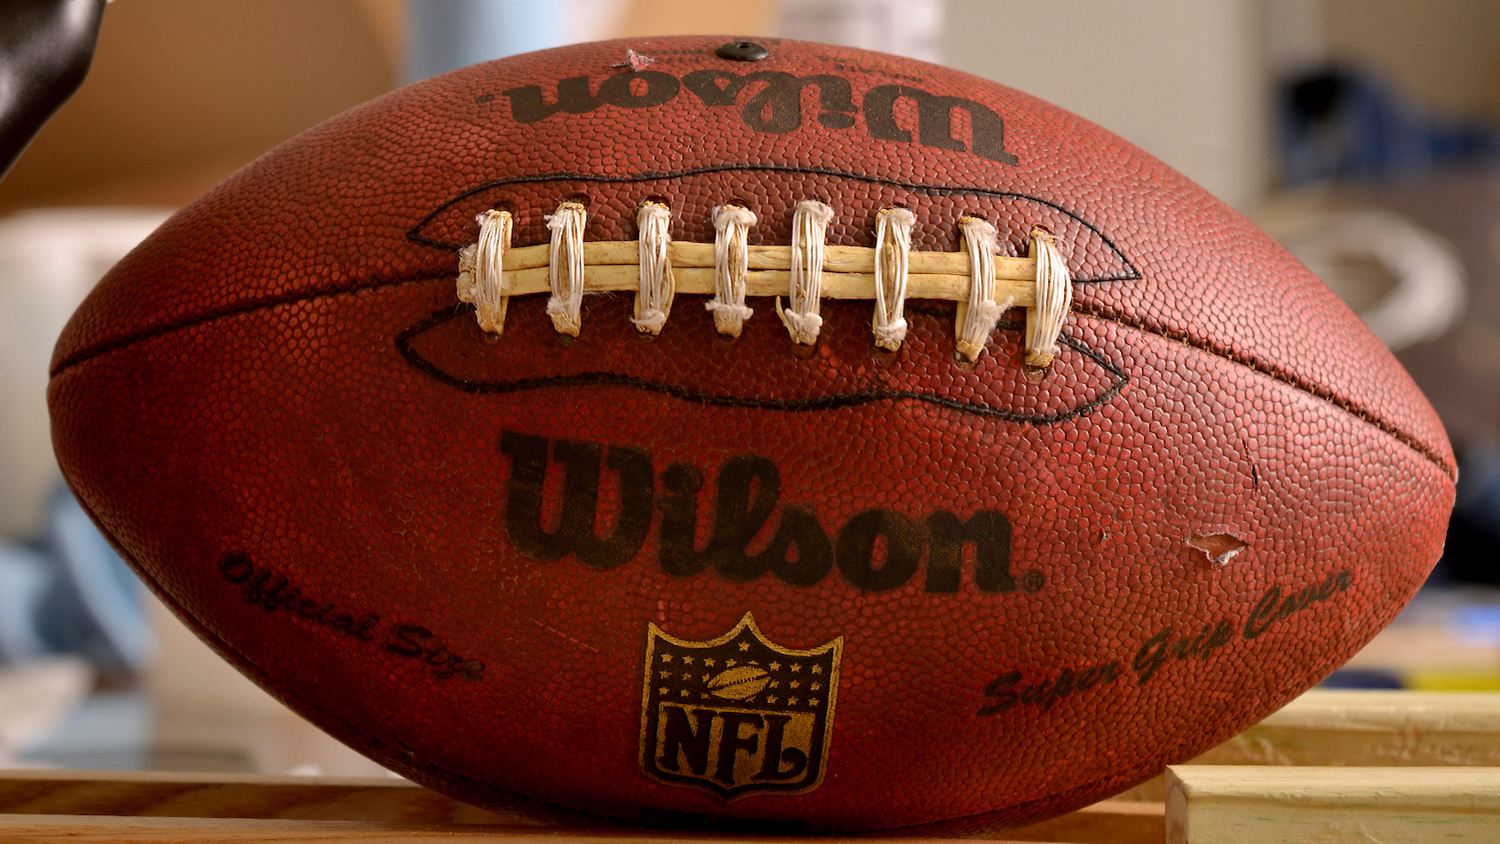 NFL Football as CALS' Mike Walden examines the NFL's lessons for business